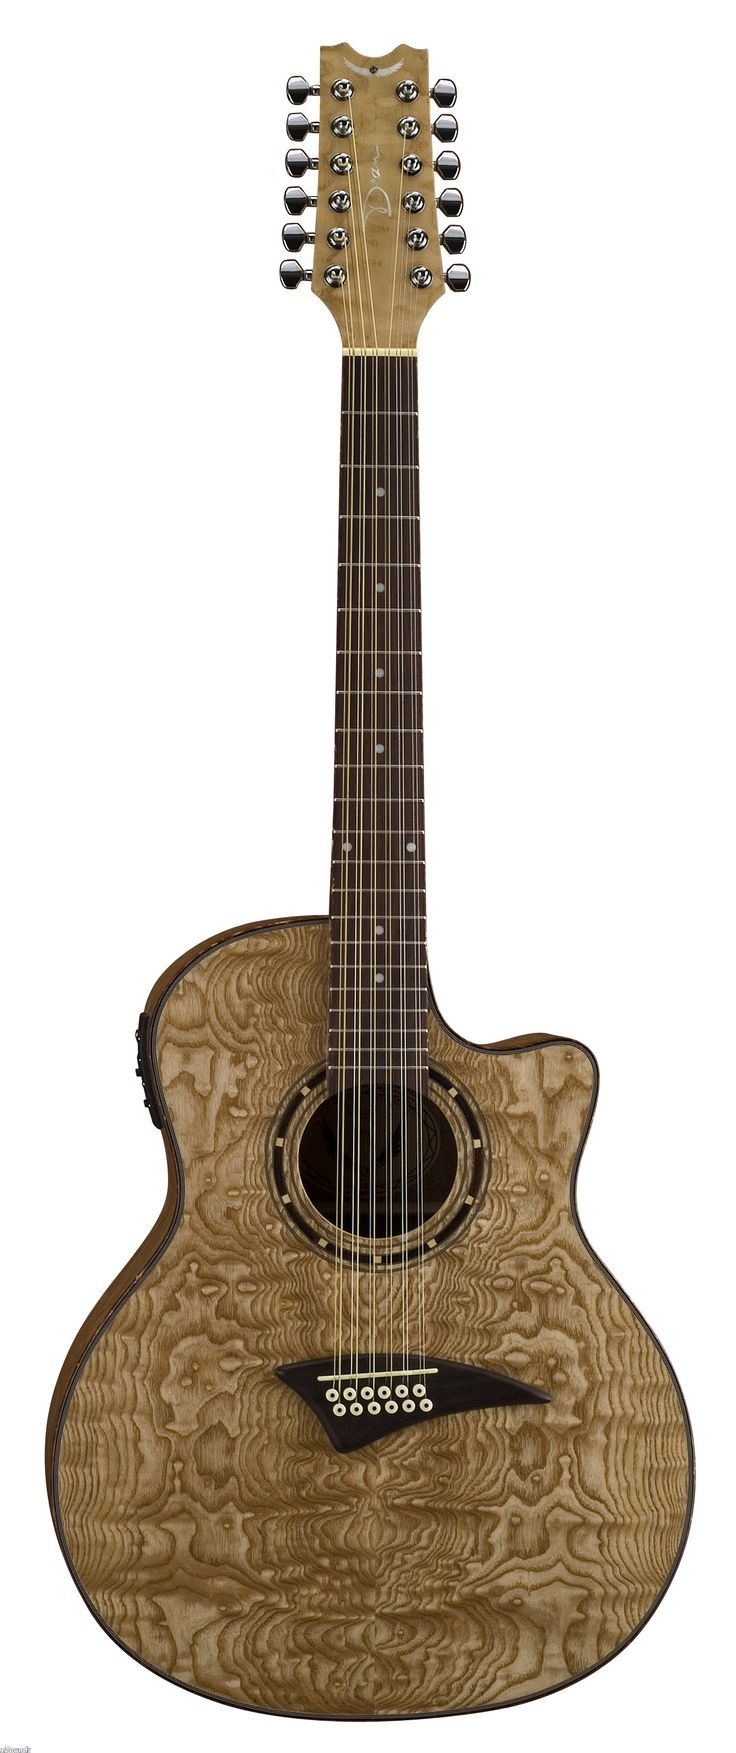 Dean Exotica Quilted 12-String Electric Acoustic Guitar